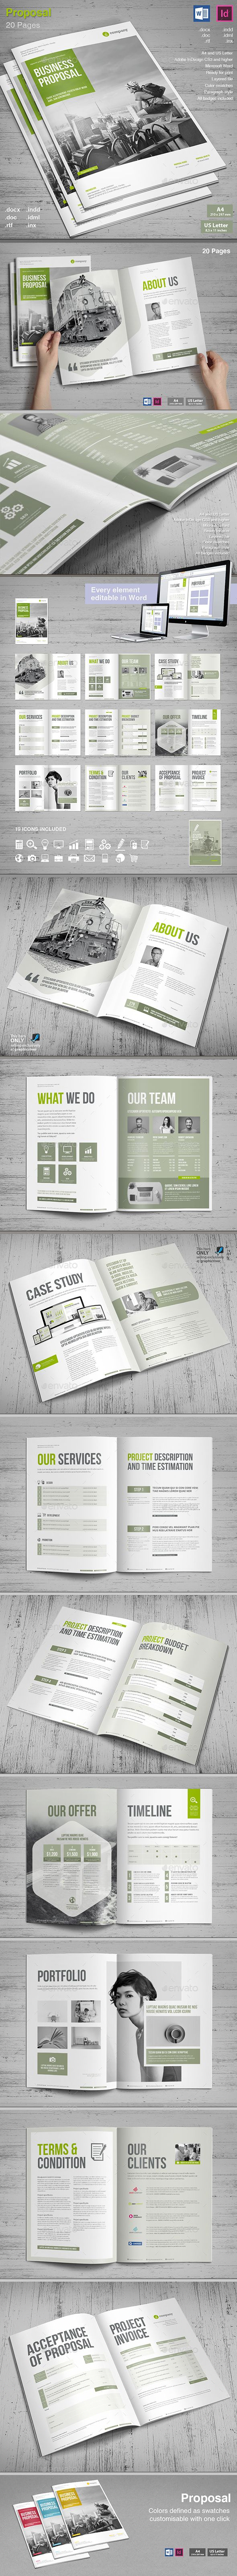 Proposal Brochure Template InDesign INDD, MS Word - A4 and US Letter